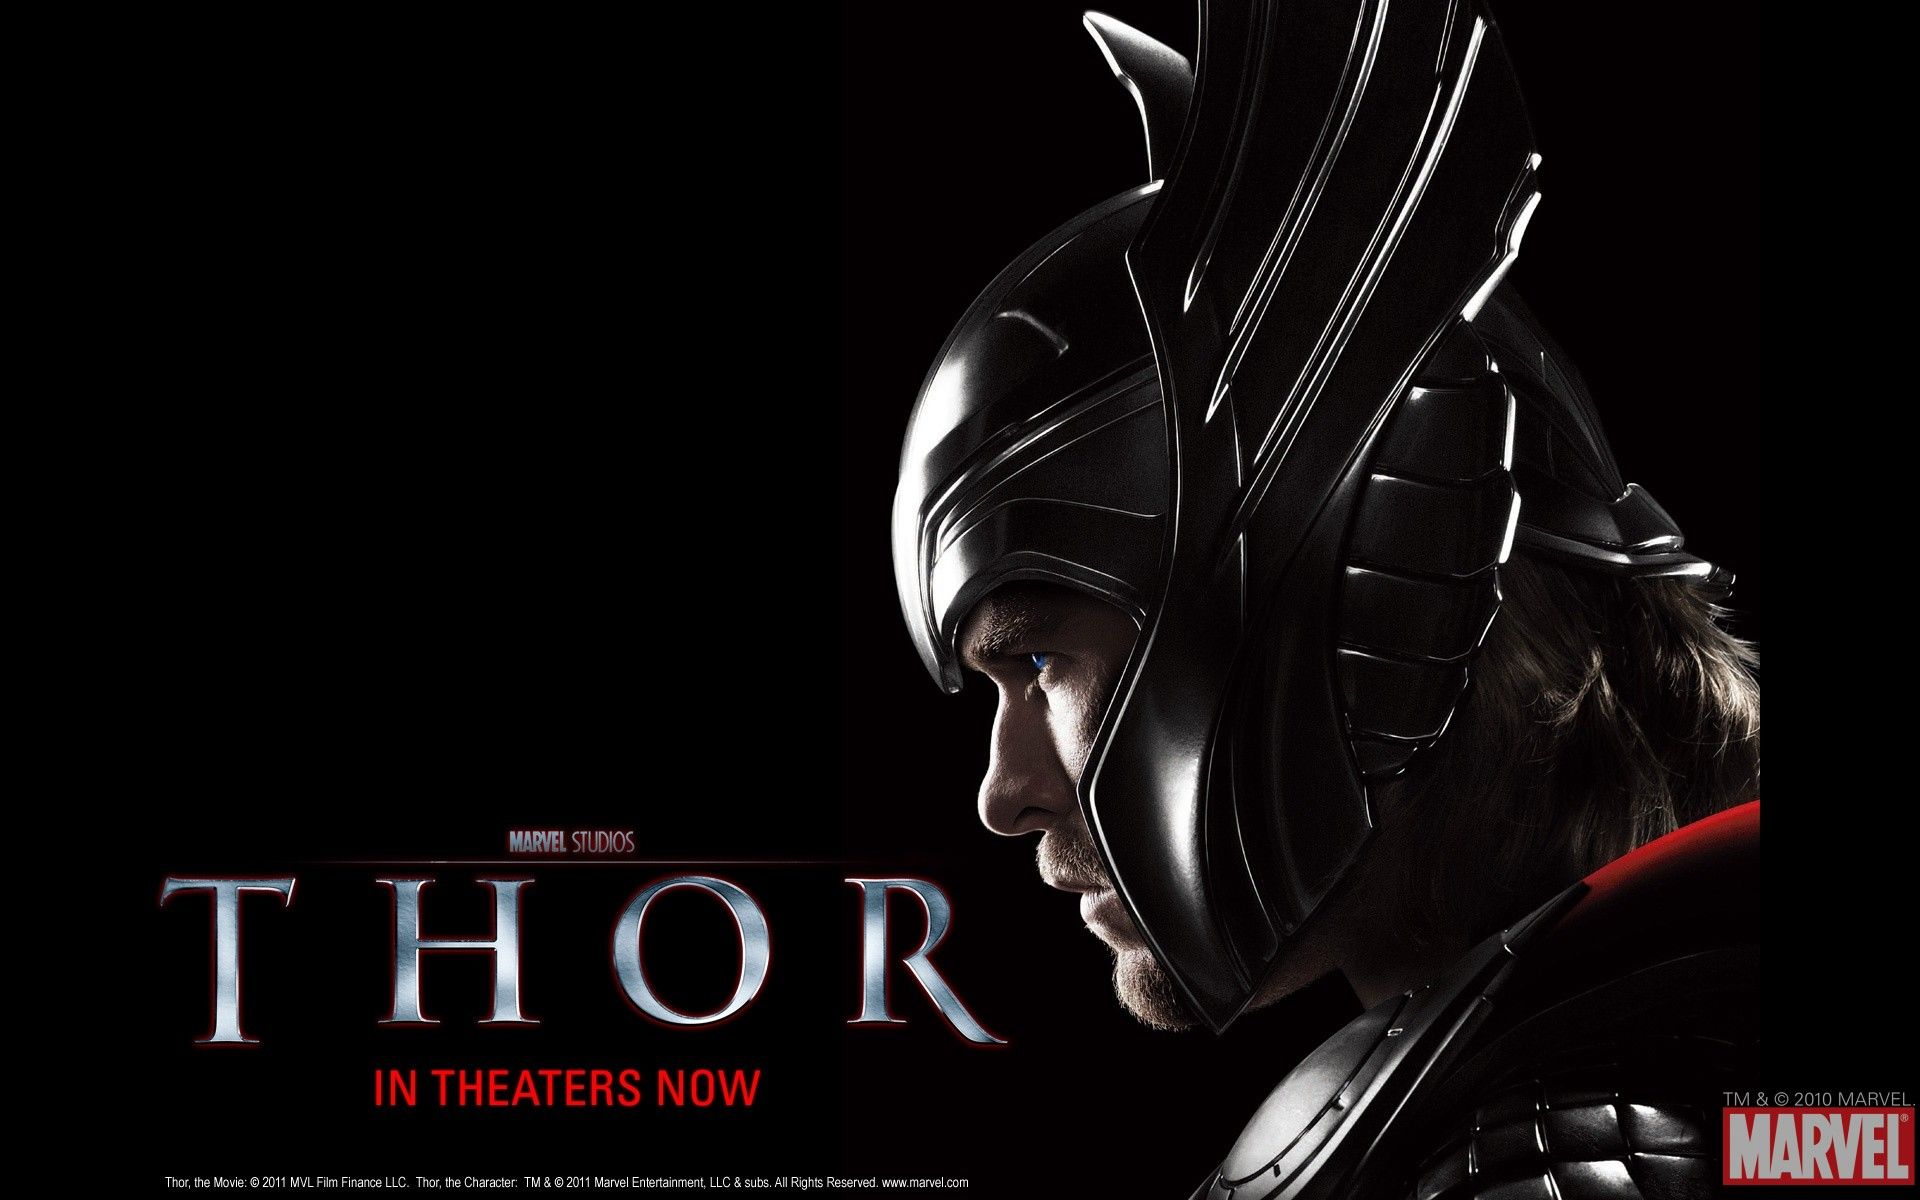 Download The Latest Thor Hd Wallpaper From Wallpapers111com We